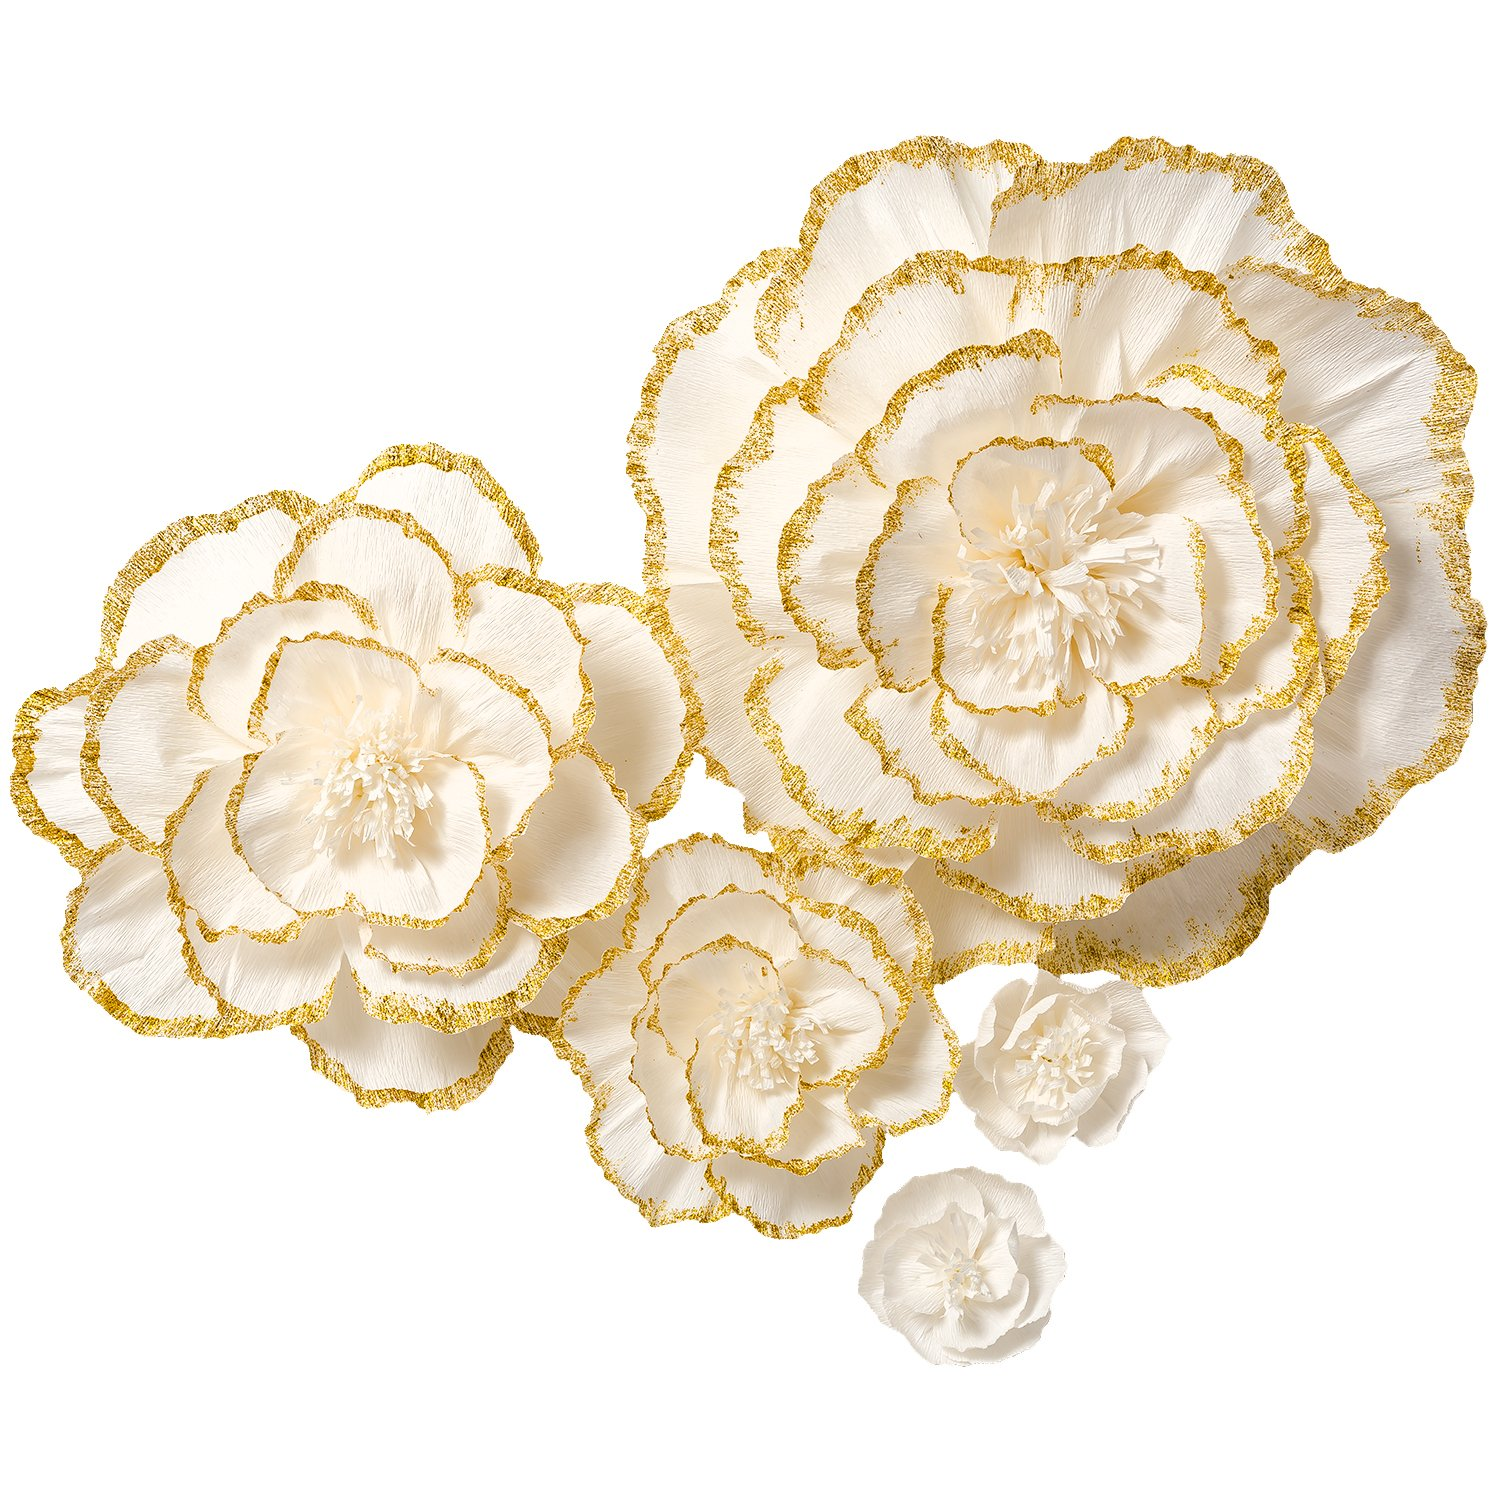 Handcrafted Flowers,Crepe Paper Flowers,Large Paper Flowers,For Baby Nursery Home Decor,Baby Shower,Nursery Wall,Wedding Backdrop,Wall Decor,Archway Decor(Gold flash Powder Edge Flowers Set of 5